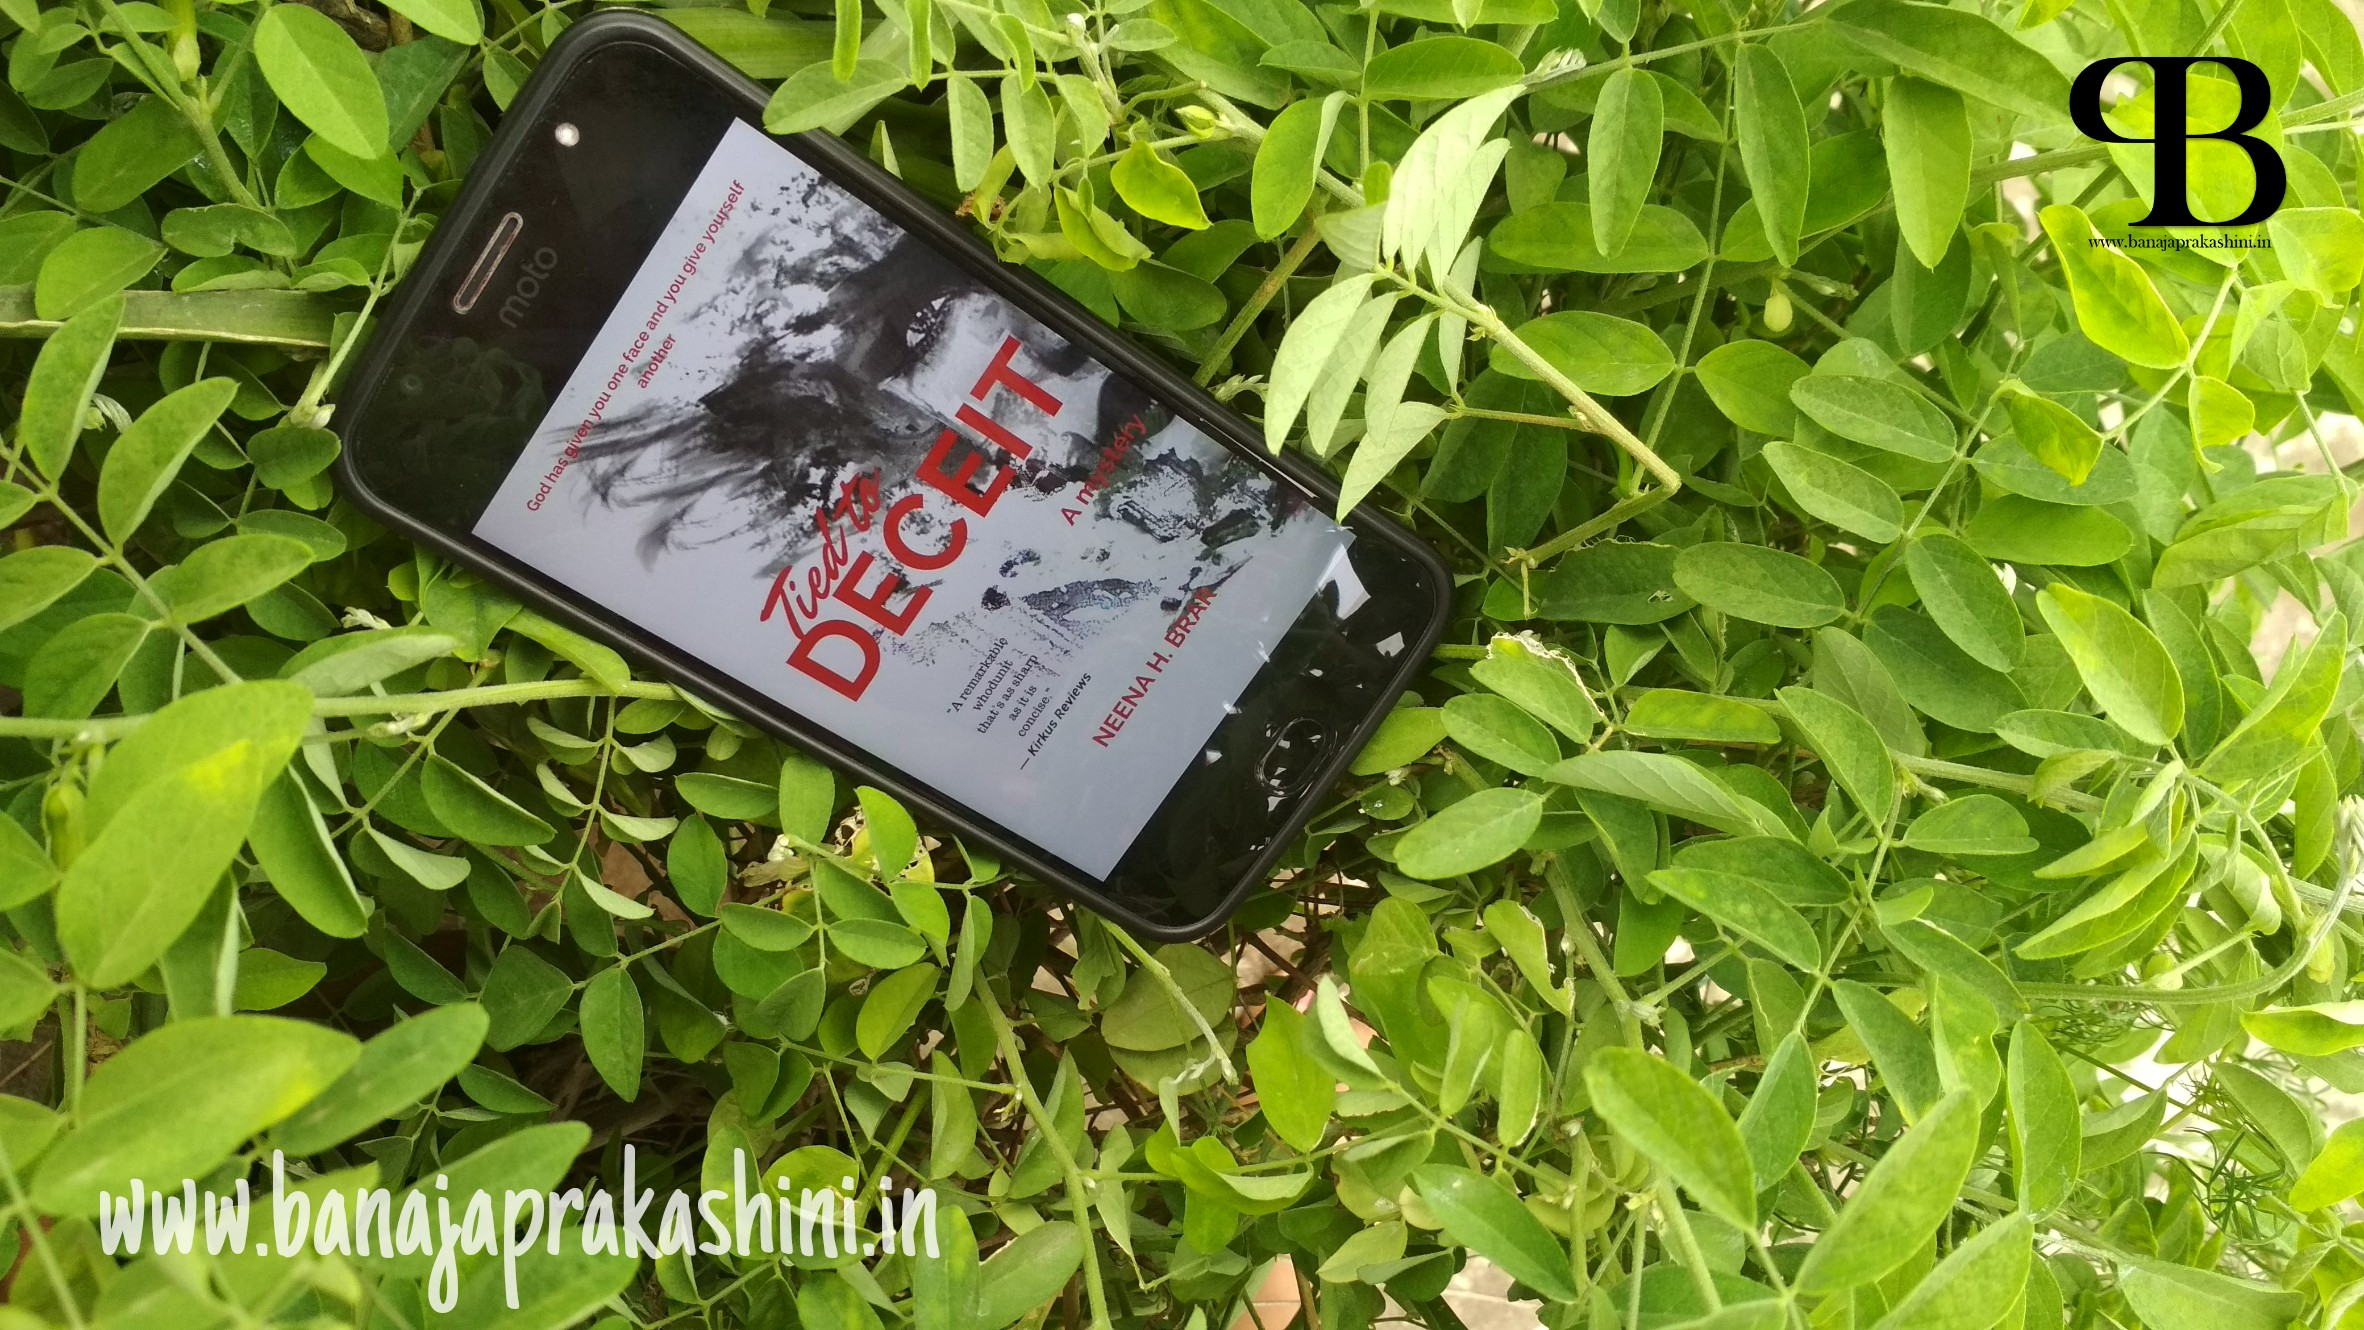 Review Pen: Tied To Deceit by Neena H Brar